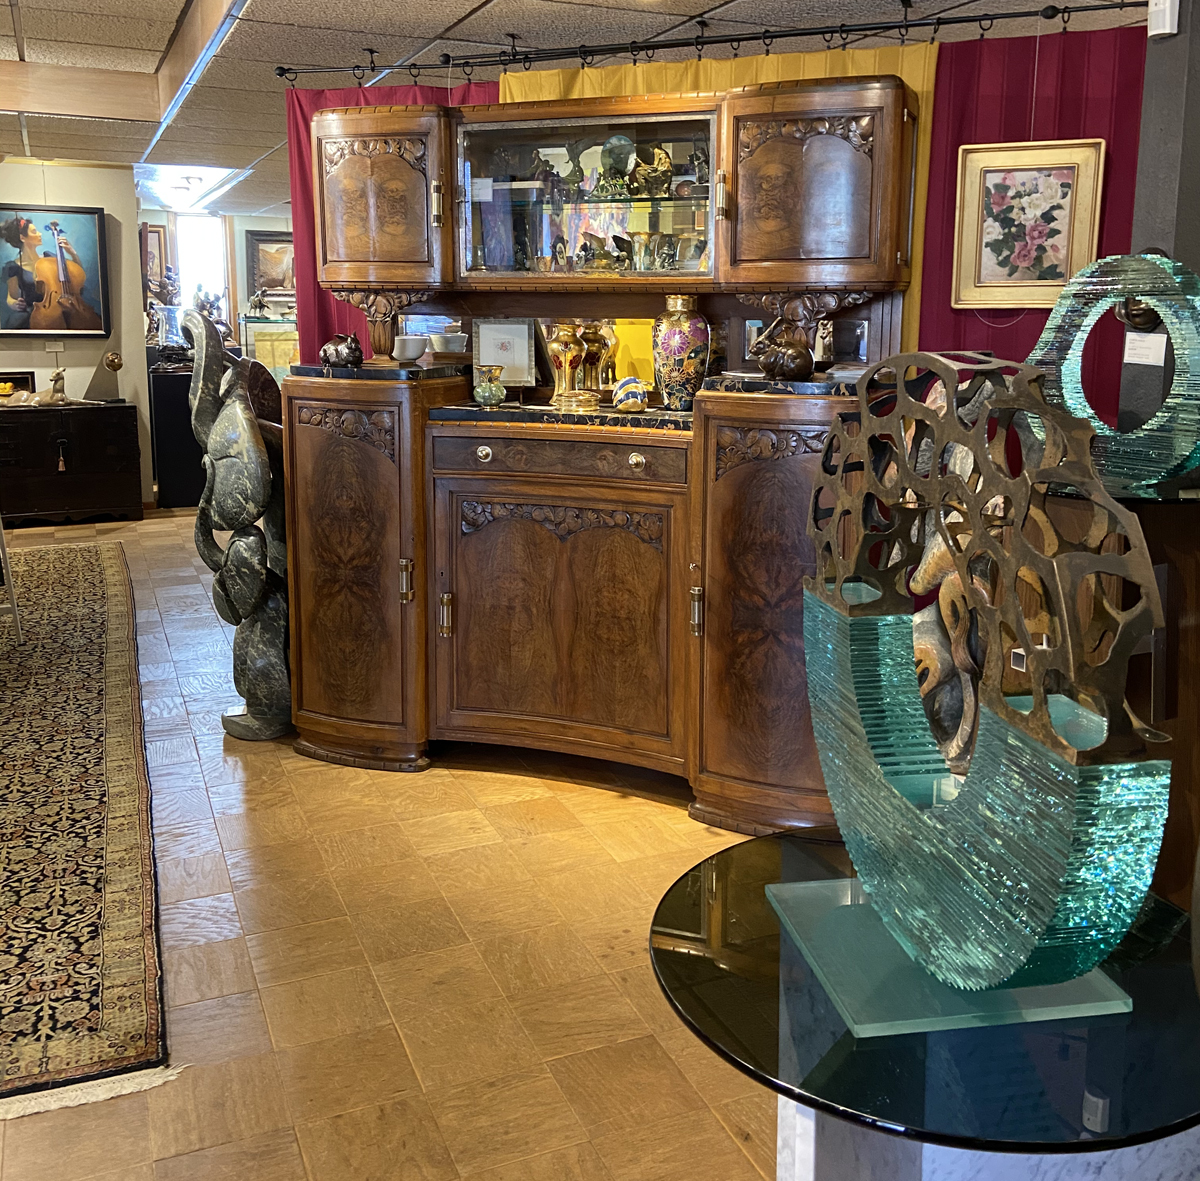 JK Designs, is headquartered at Columbine Gallery in Loveland, Colorado. Over the last 25 years, Loveland has become a mecca for the creation of sculpture. The community is home to over three hundred artists, many of whom work in sculpture related support industries. As of August of 2009, 2,766 workers in Loveland, out of a total workforce of 33,401, are employed in the arts and design related/cultural occupations. This is over 8% of the total labor force in Loveland. There are workers in fine art, literary art, including publishing, design, art related retail heritage (museum) and the performing arts. Shortly after JK Designs, Principal John Kinkade established the National Sculptors' Guild, it was determined that visitors wanted to see examples of the members' artwork. As a result, Columbine Gallery was opened. The 4,500 square foot building housing the gallery was designed by one of Frank Lloyd Wrights' last students. The sculpture on display is by NSG members only; accompanied by renowned painters.  Owned and operated by the father/daughter team of John Kinkade & Alyson Kinkade, the gallery artfully displays over 800 NSG sculptures and paintings by 50 local and national artists.